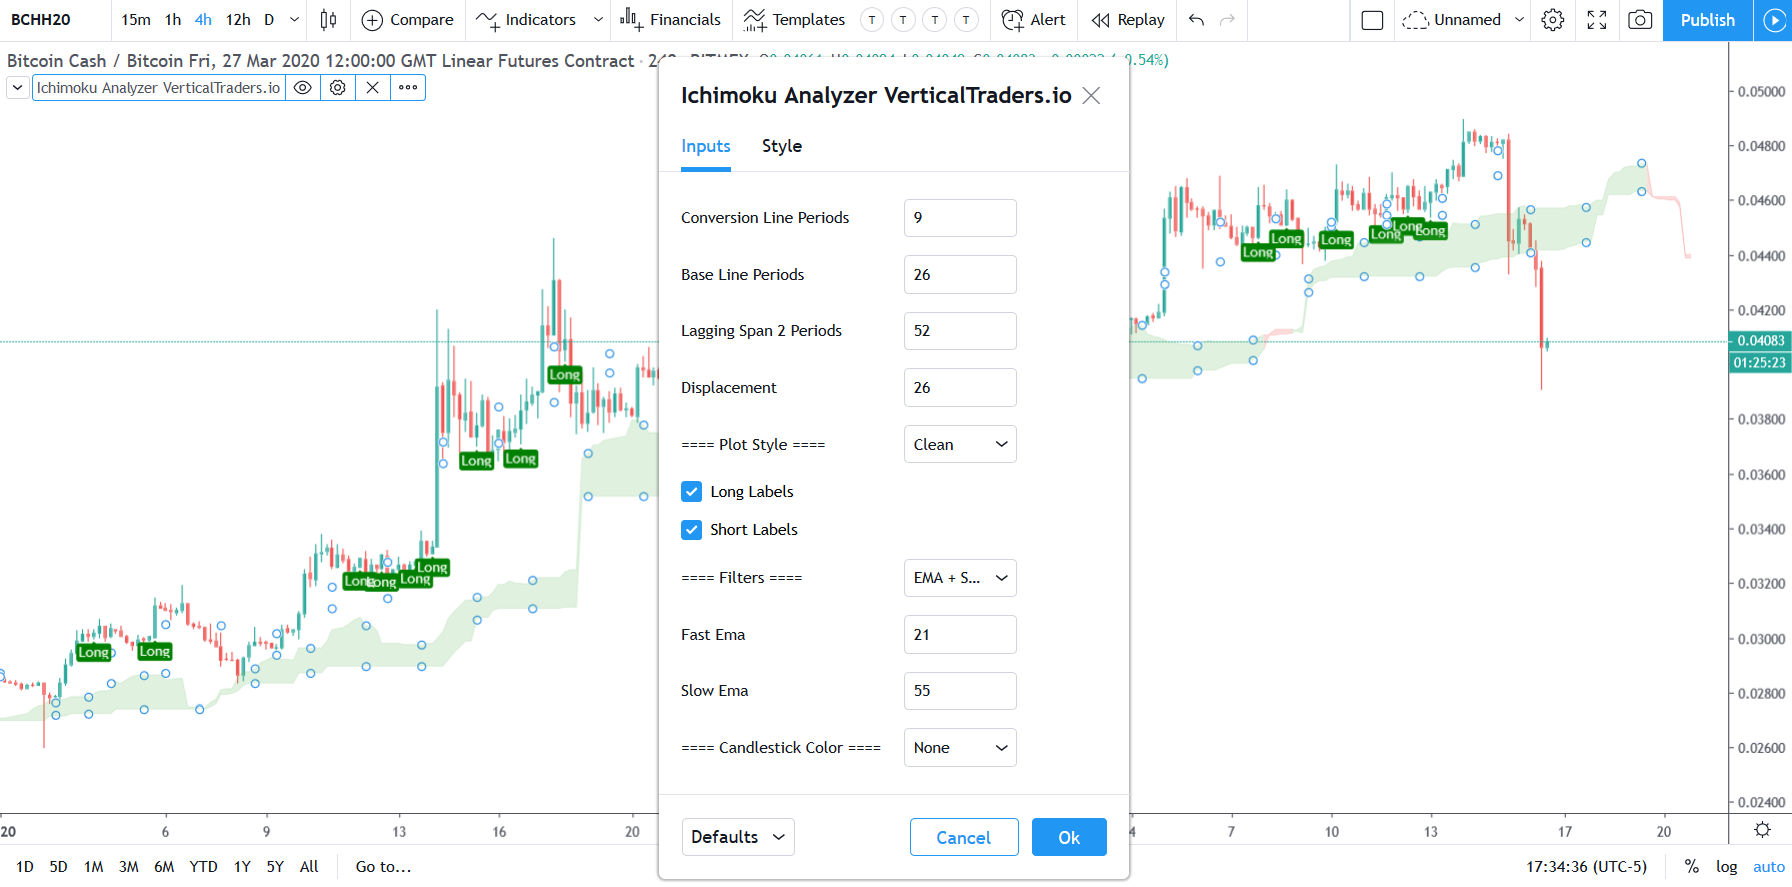 Ichimoku Analyzer (Easy read of cloud conditions)